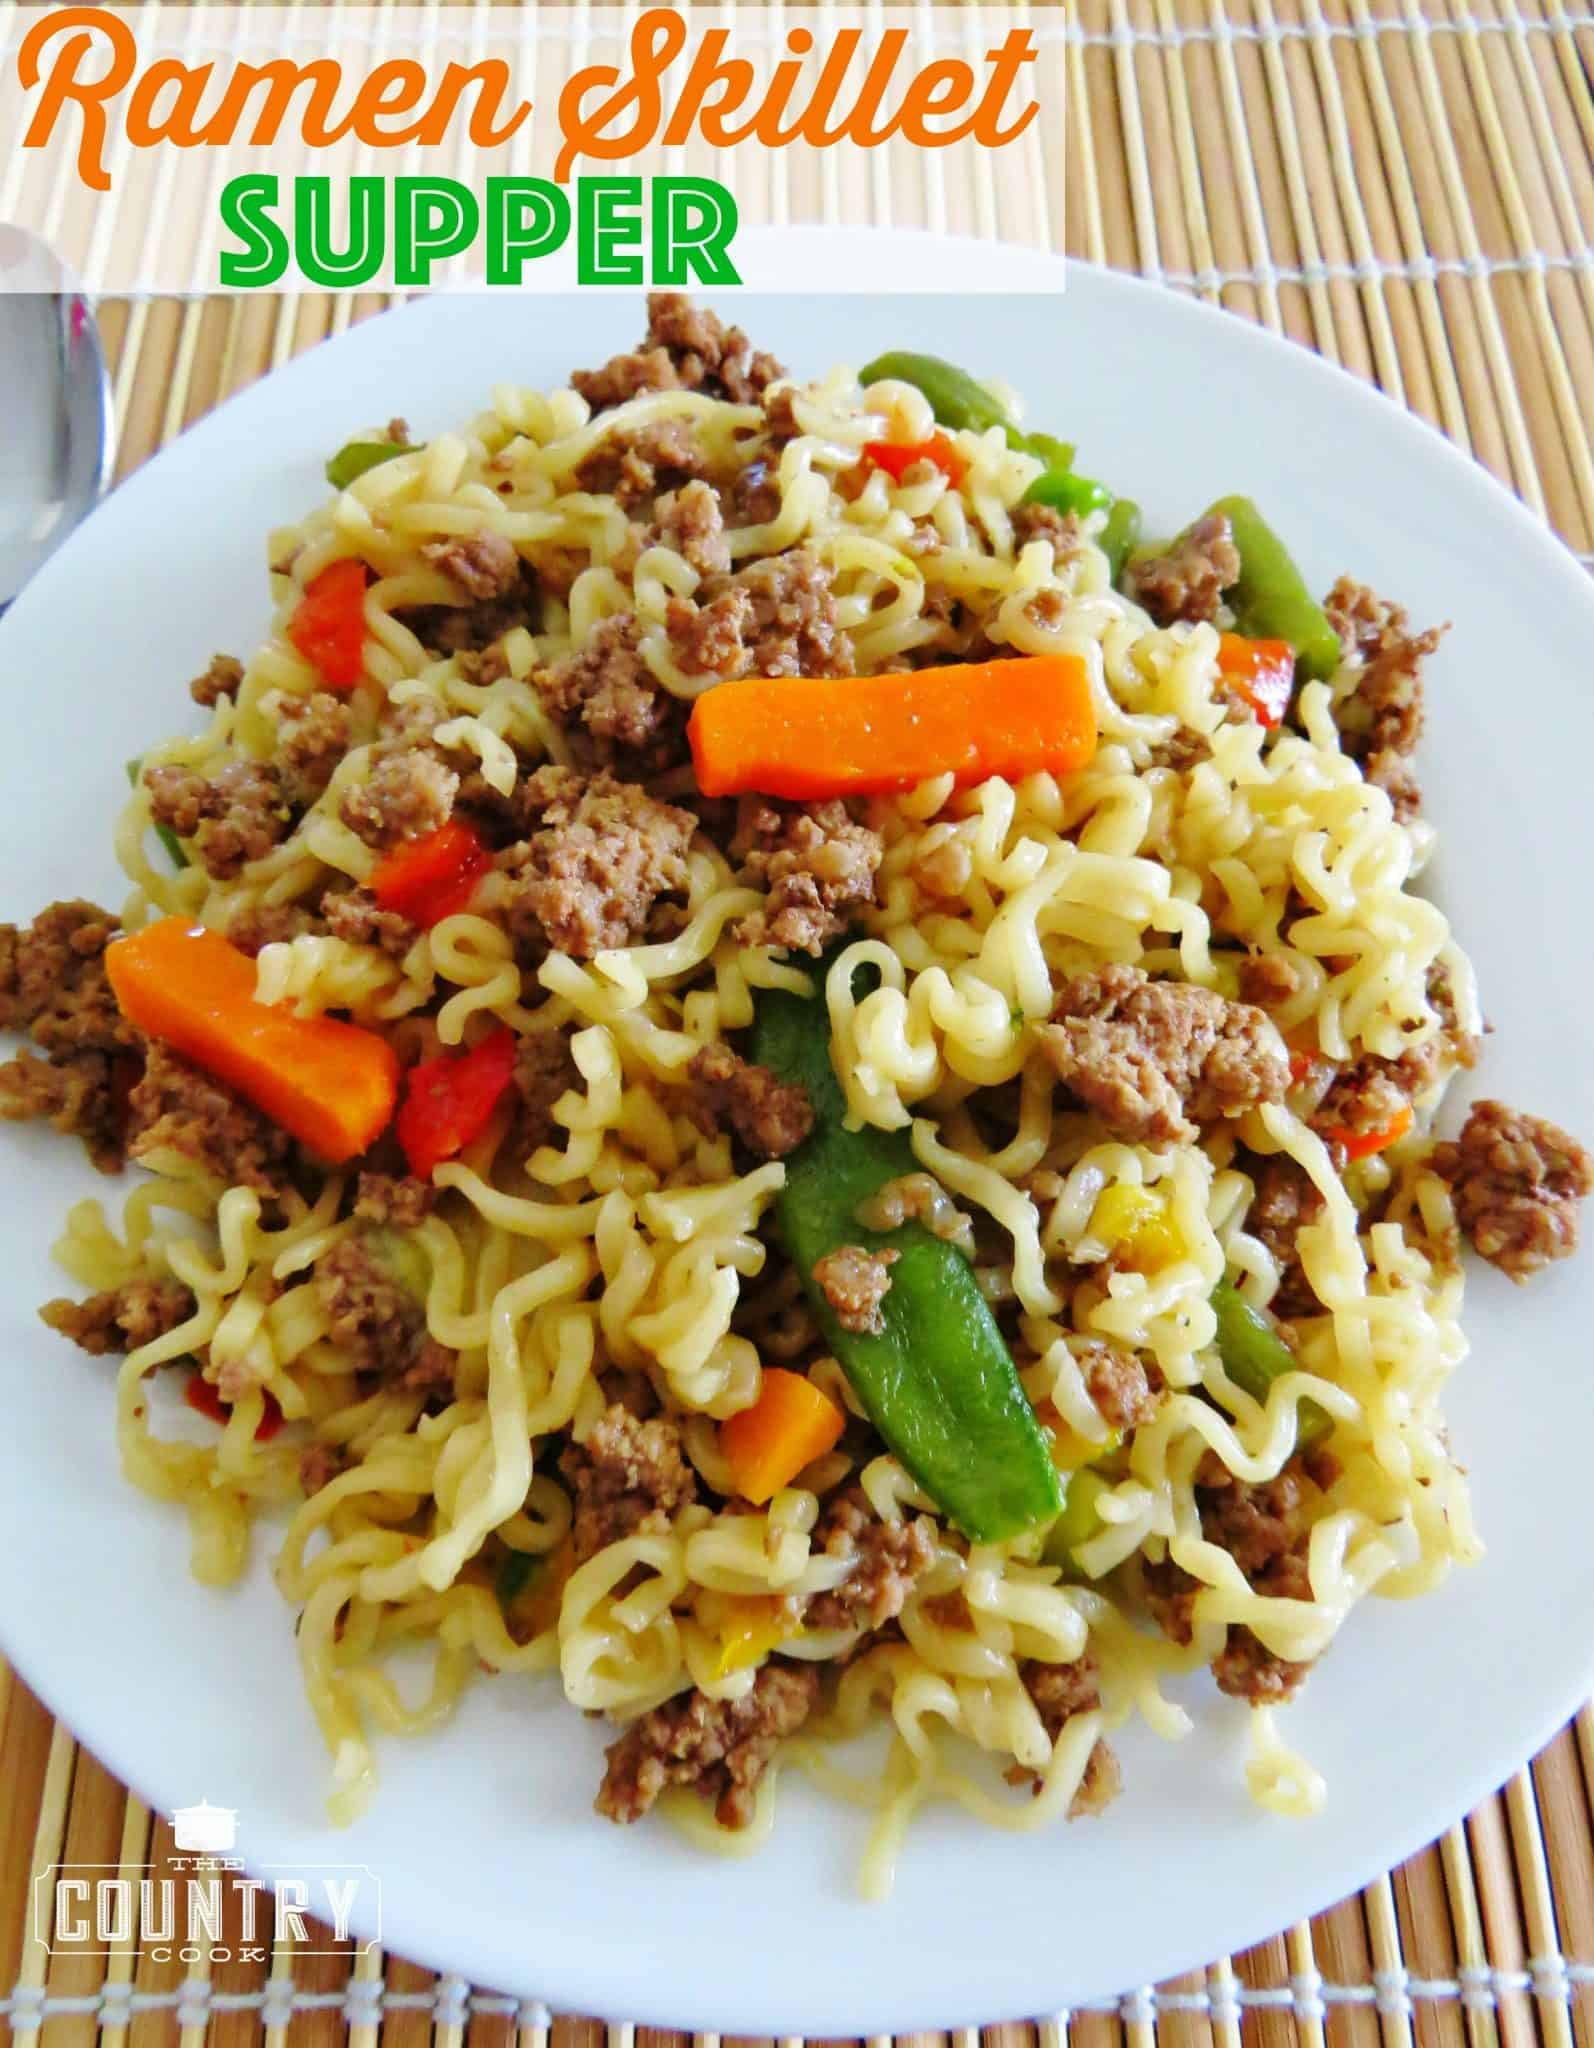 Ramen Skillet Supper with ground beef and vegetables recipe from The Country  Cook